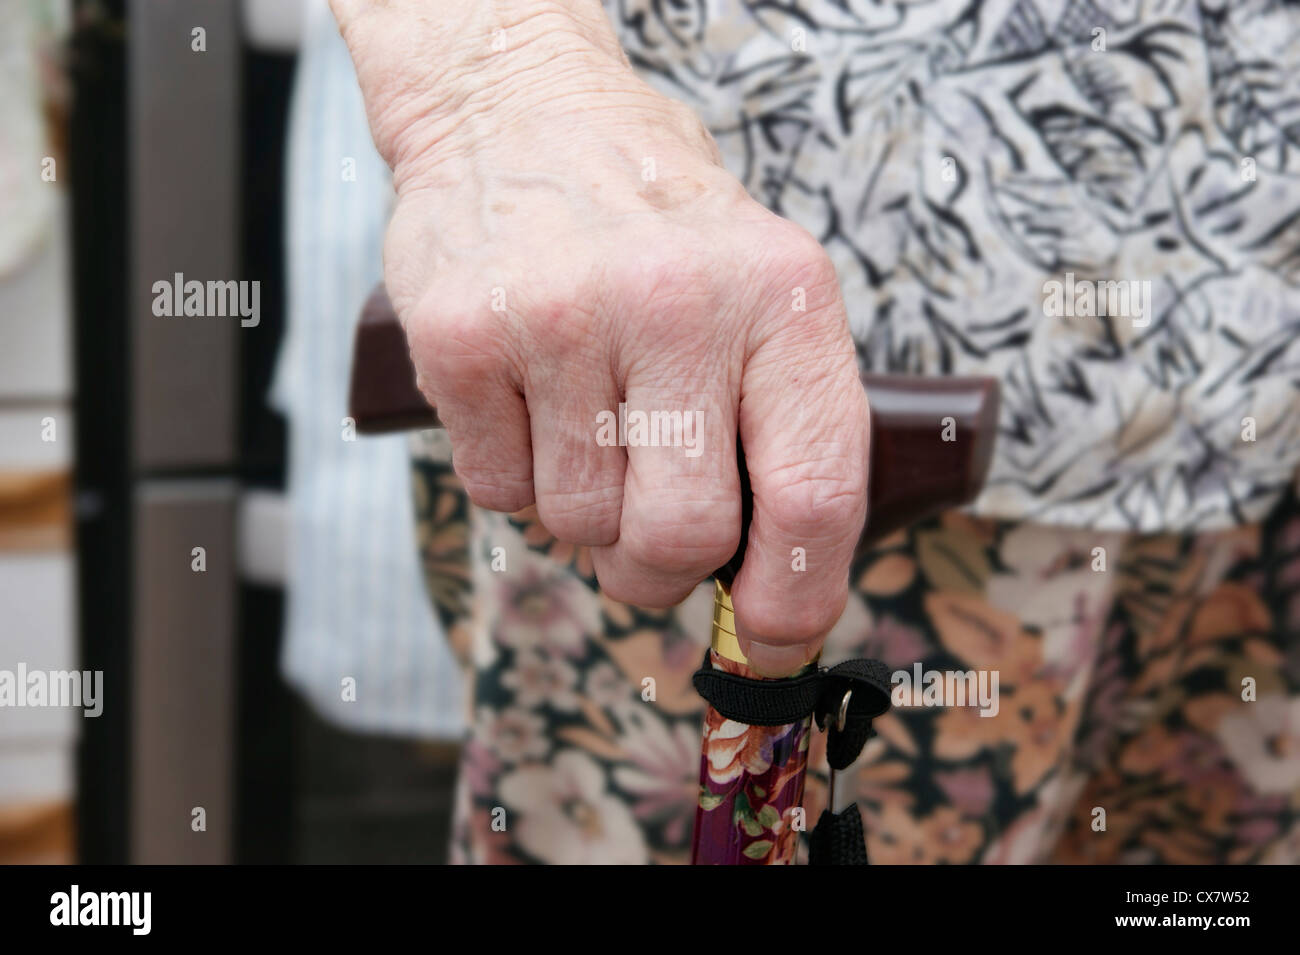 Elderly woman's hand holding a walking stick - Stock Image